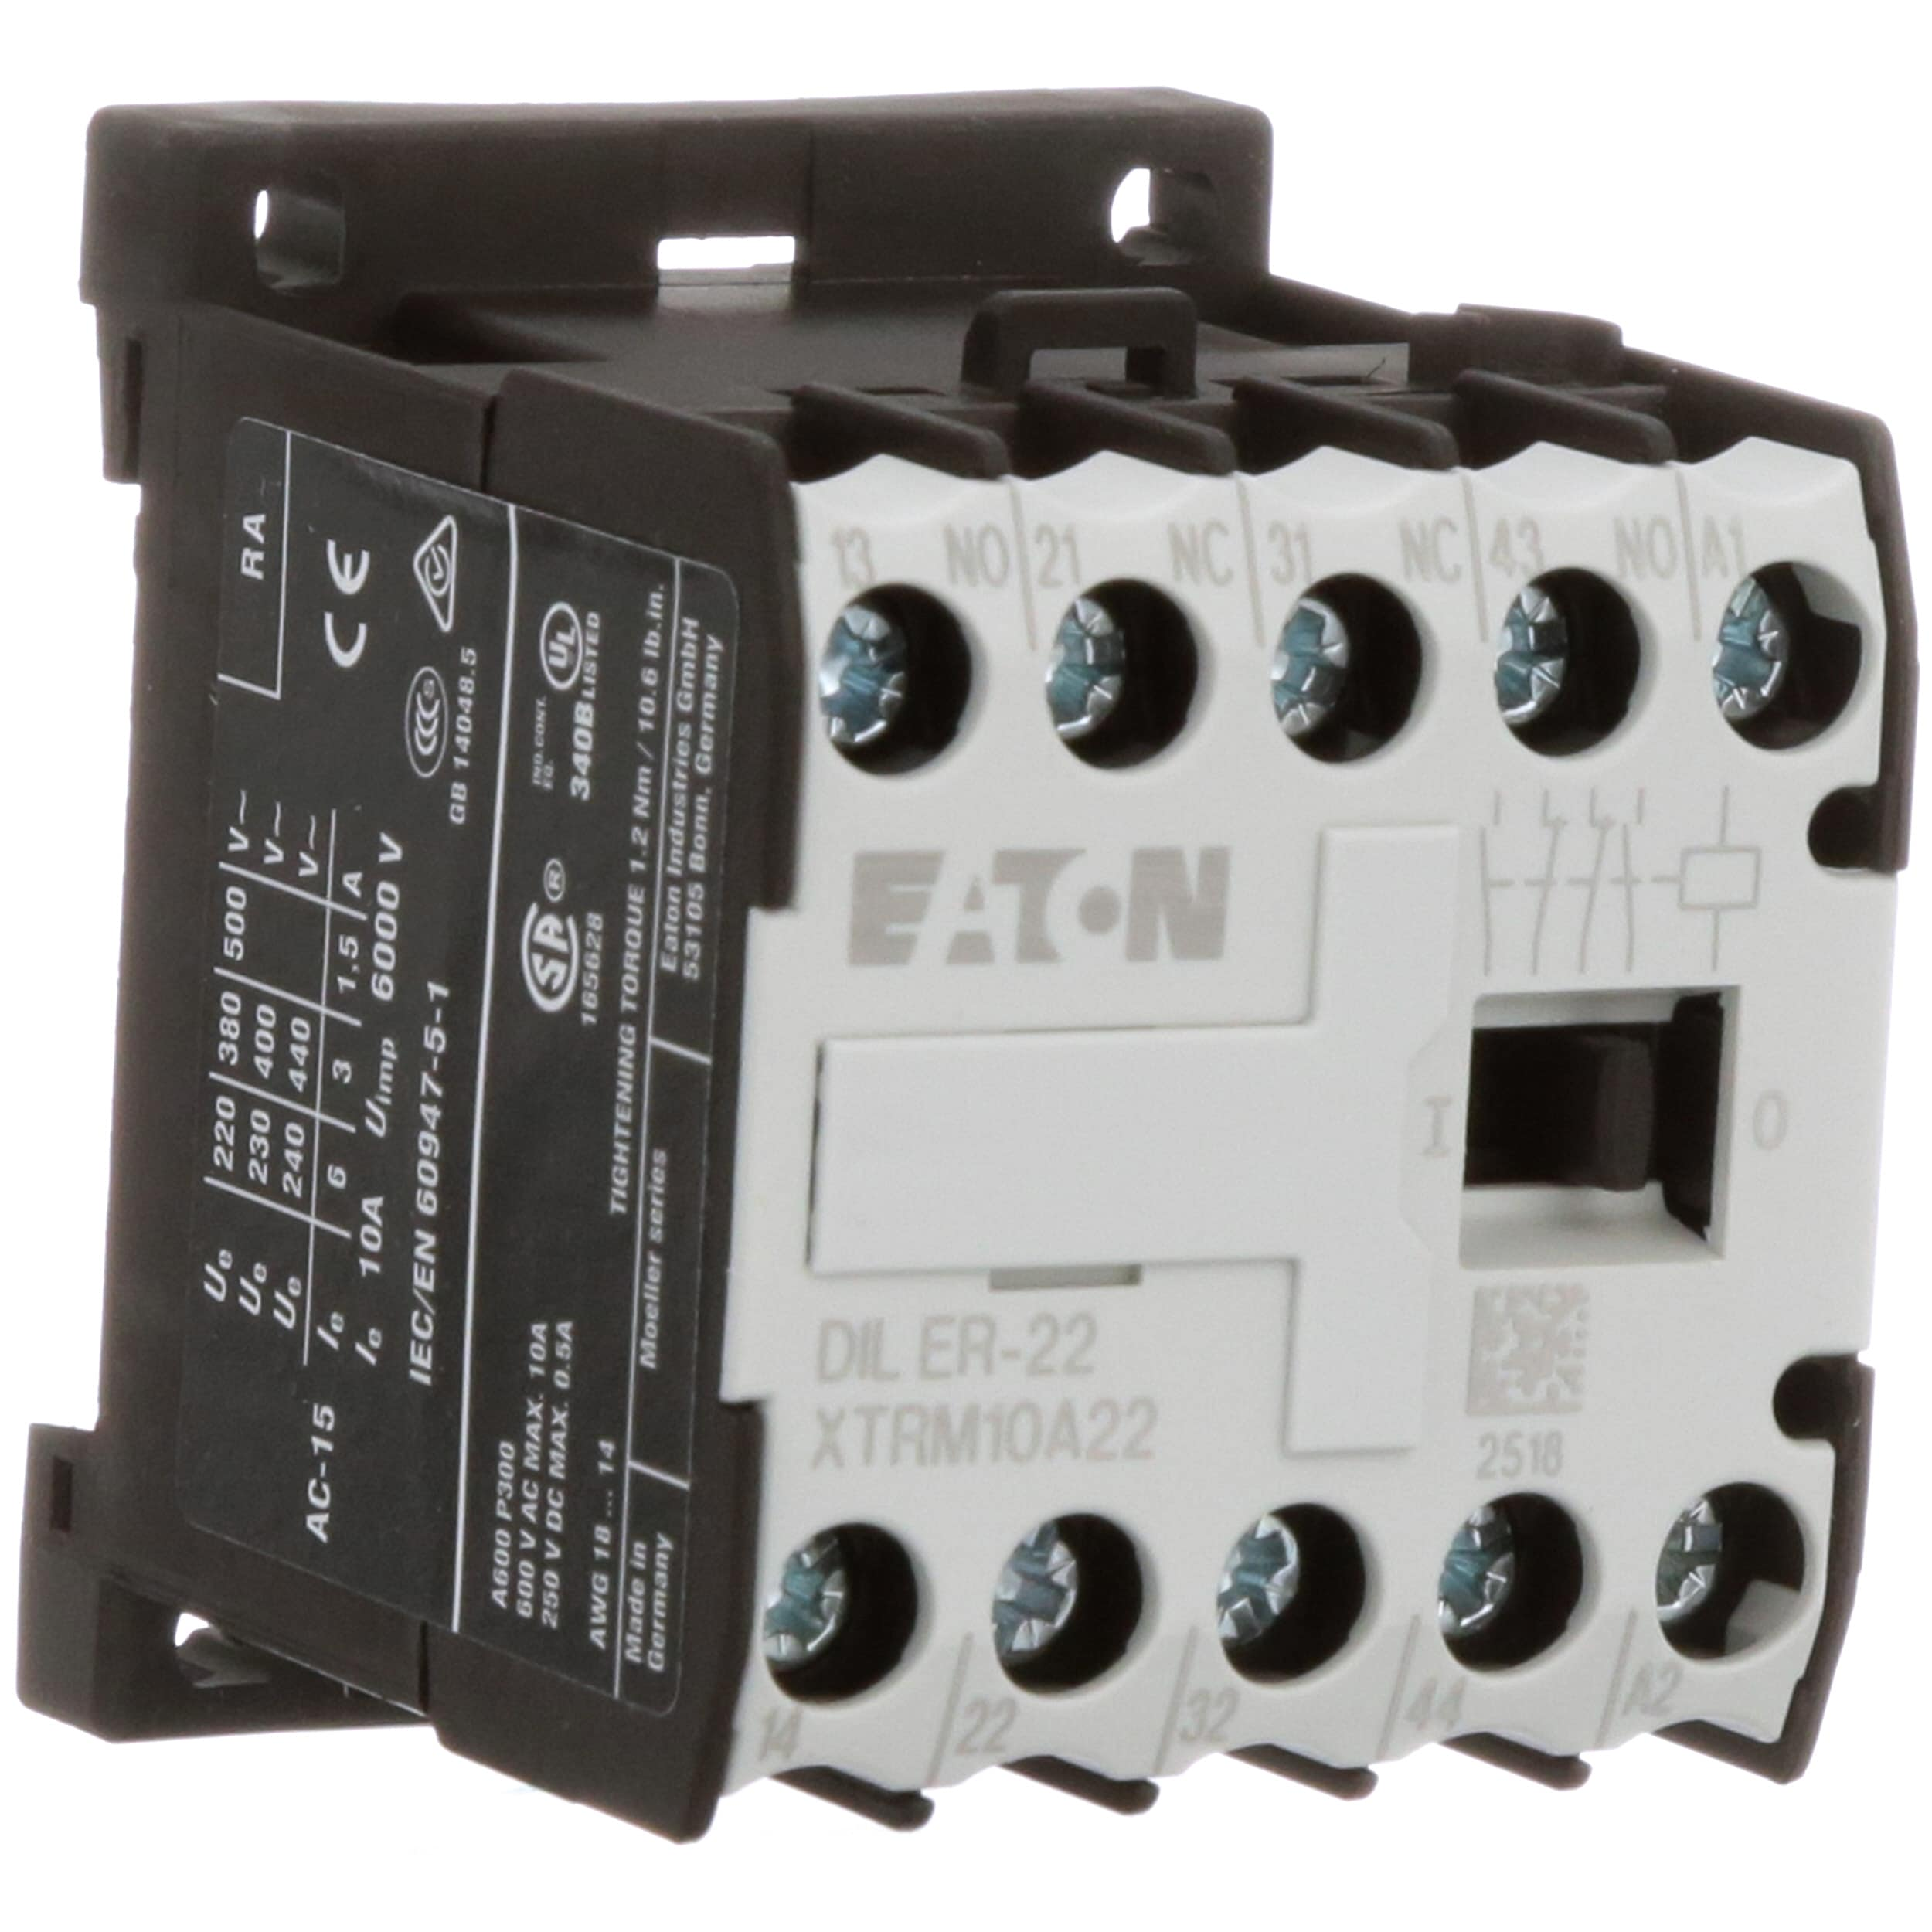 Eaton Cutler Hammer Xtrm10a22a Mini Control Relay 4 Pole 2no Current 2nc 10 Amp Frame A 120vac Allied Electronics Automation